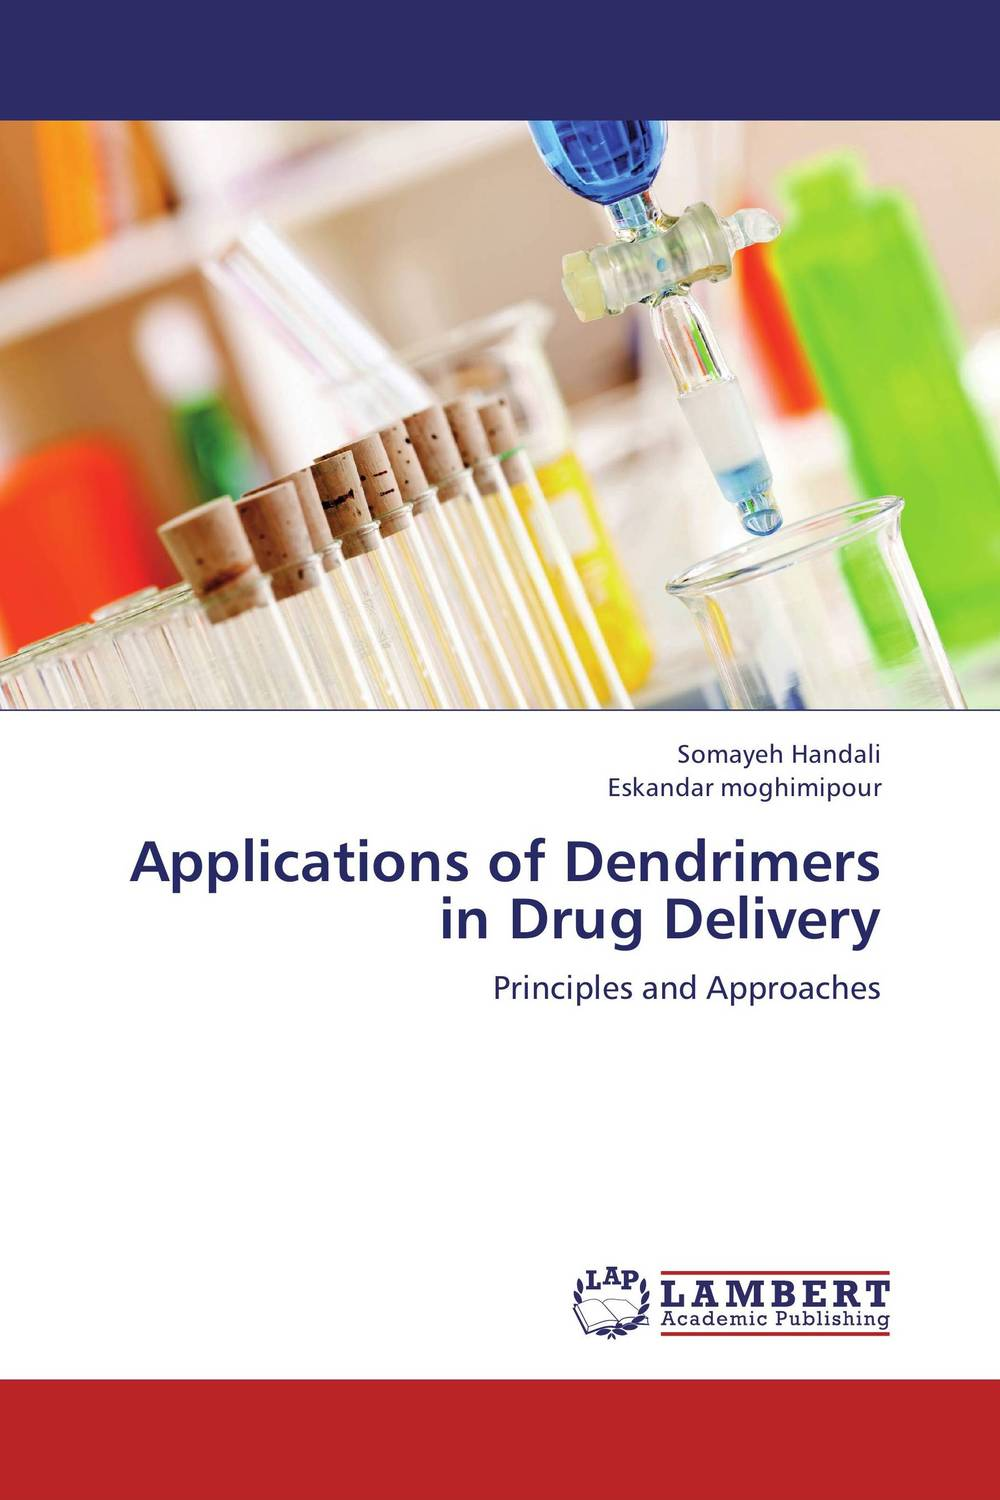 Applications of Dendrimers in Drug Delivery